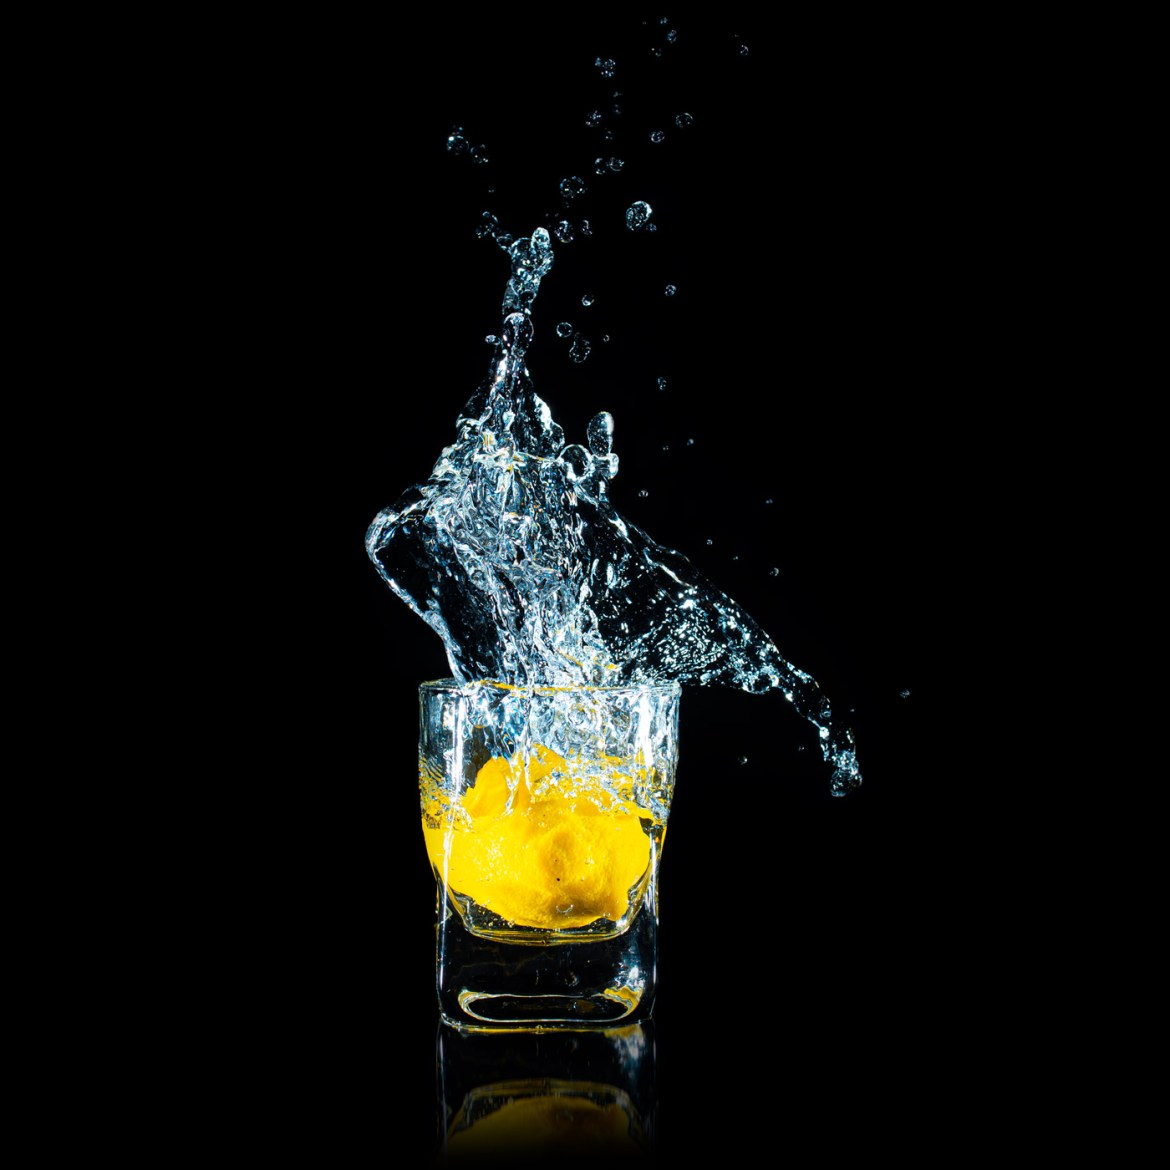 Splash photography - A lemon dropped in a glass full of water.